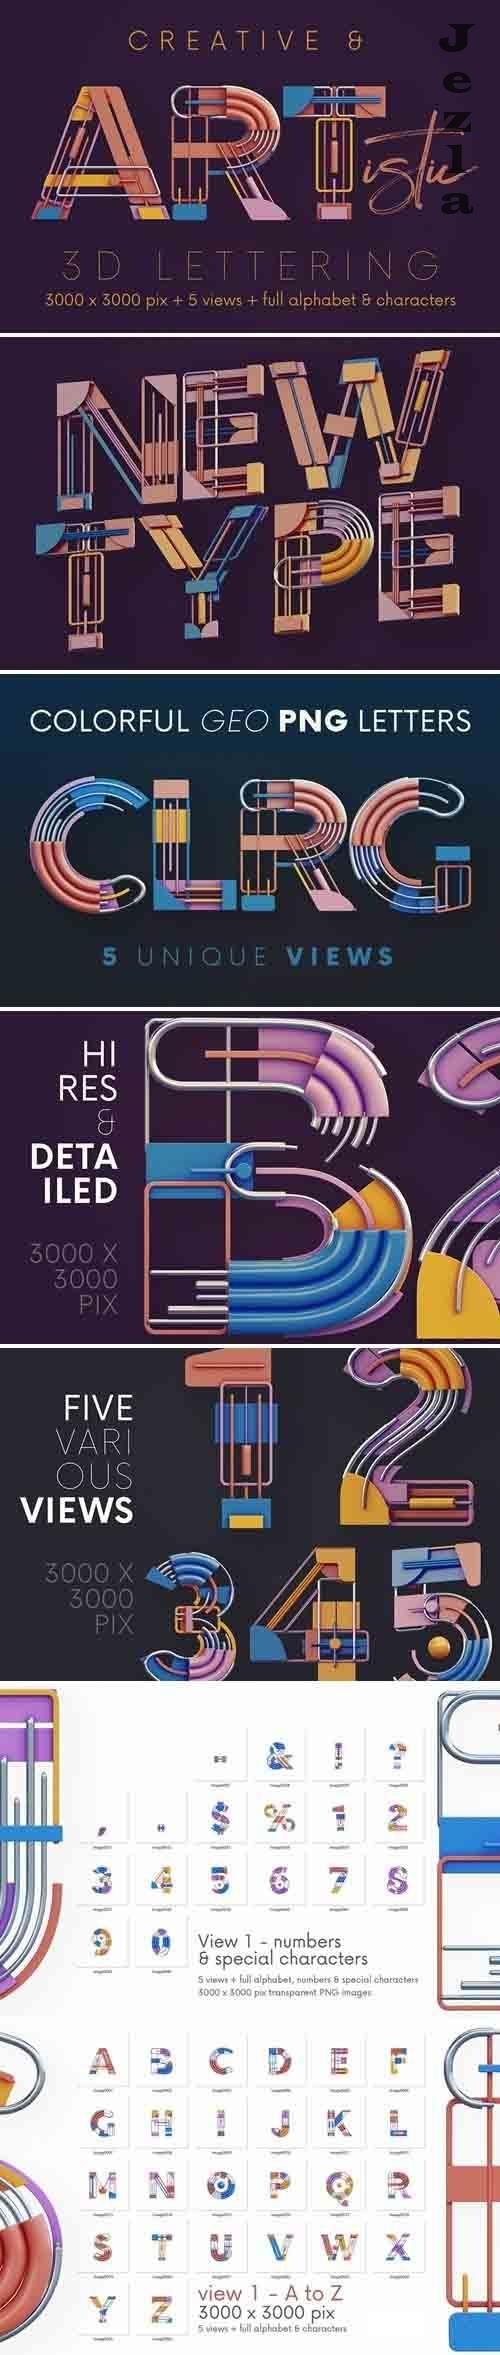 Colorful Geometry - 3D Lettering - 6108766